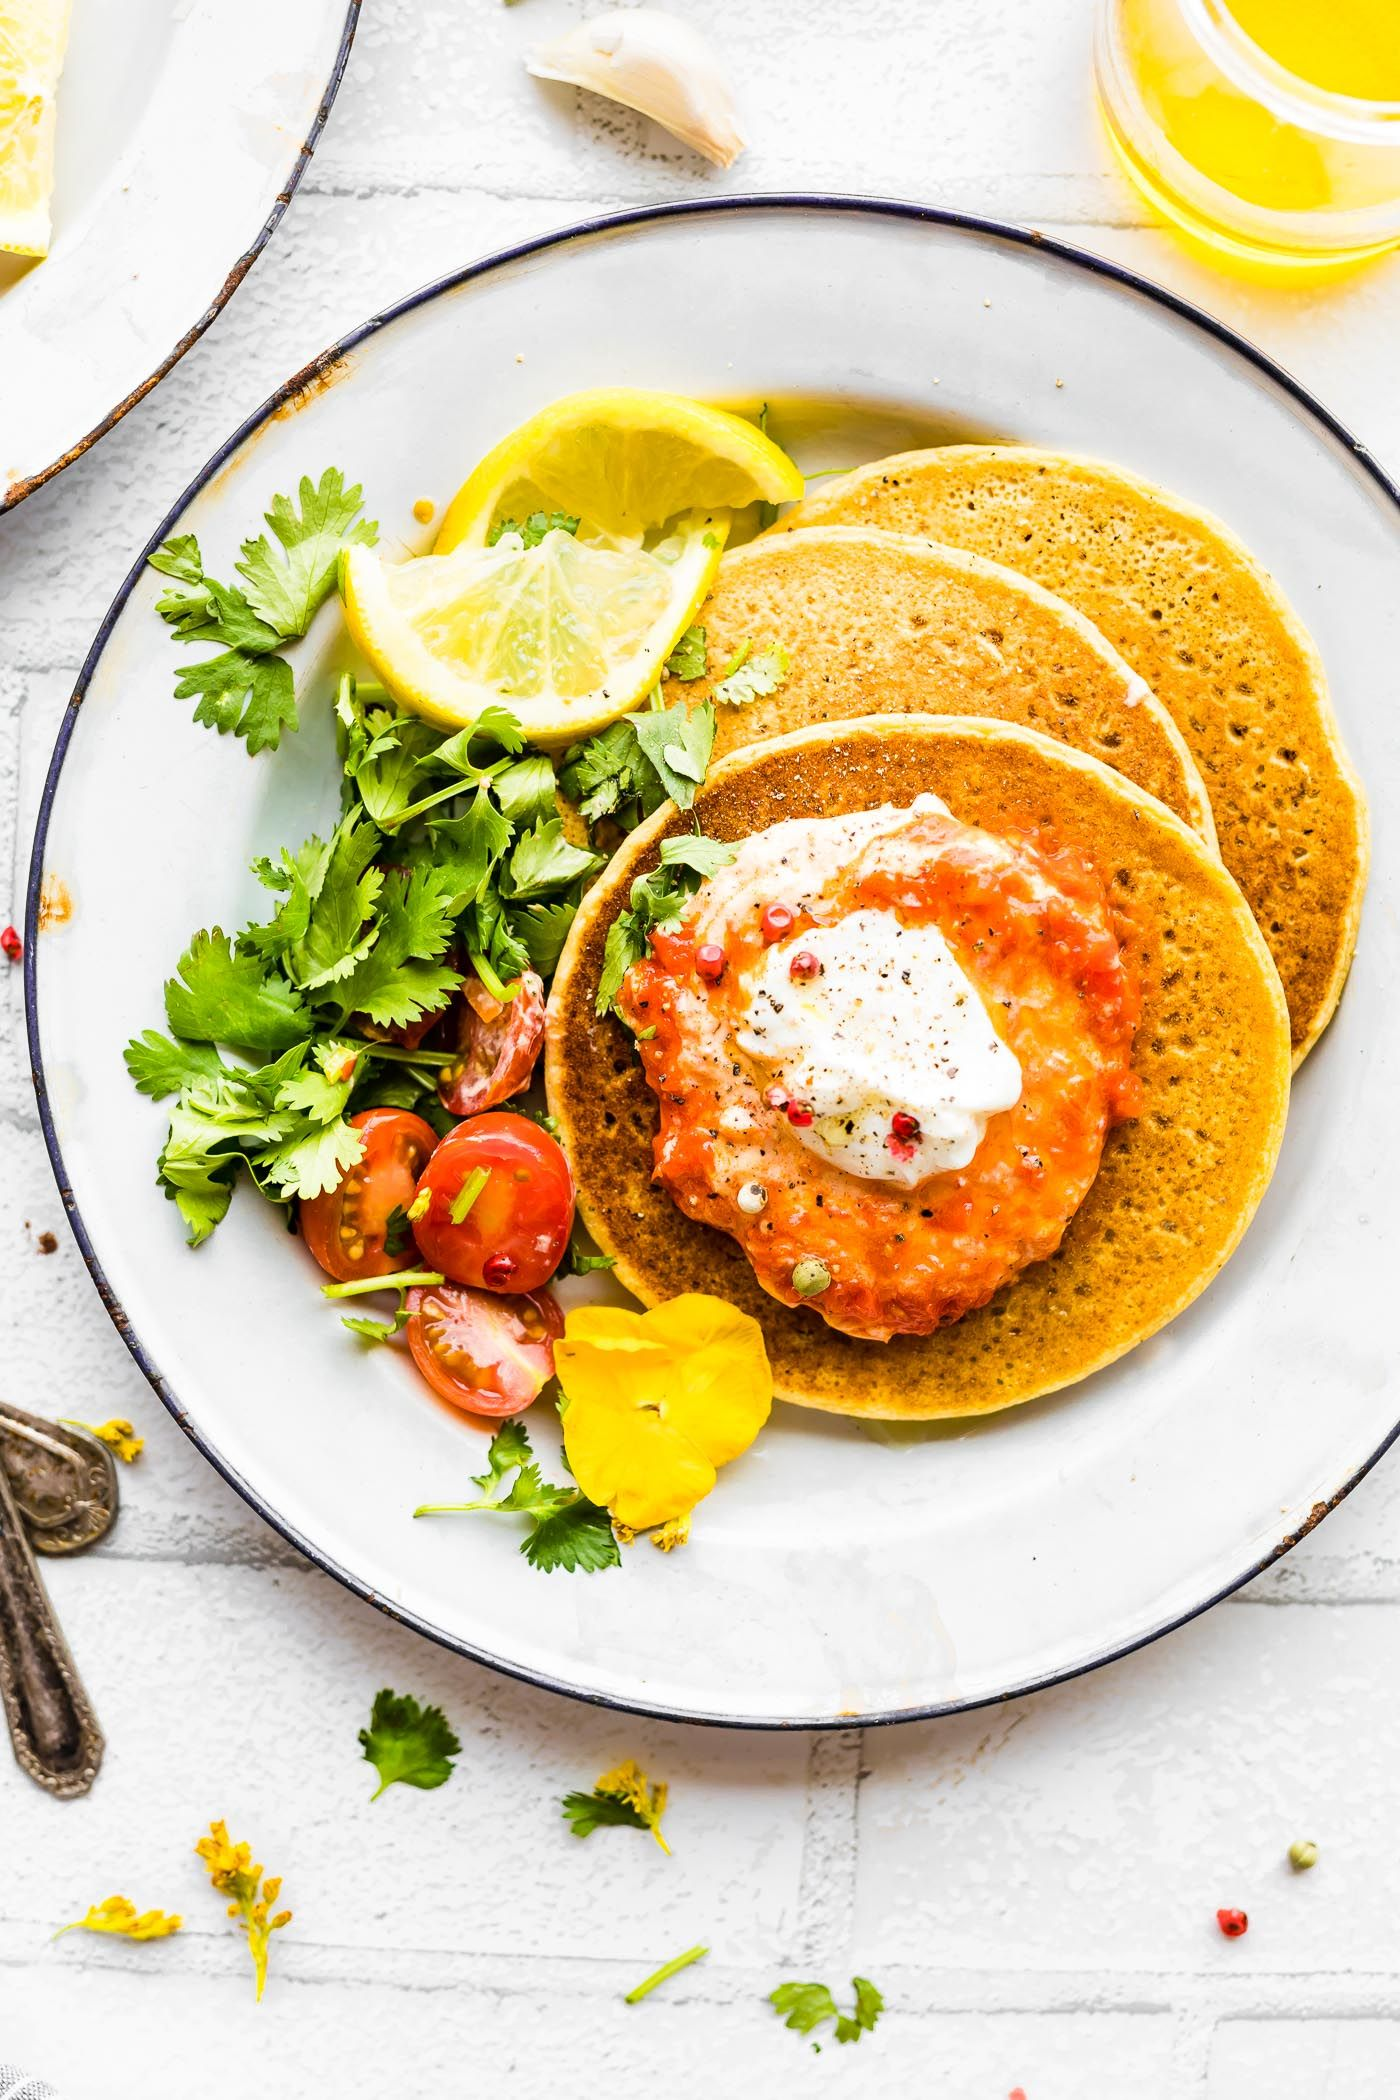 Chickpea Pancakes with Harissa Yogurt Sauce Weekday pancakes suitable for dinner? Sure, why not! These Chickpea Pancakes with Harissa Yogurt Sauce are wholesome and quick to make. A Chickpea flour pancake (Similar to Socca) with a thick and creamy spicy Yogurt topping. grain free, rich in protein and calcium!